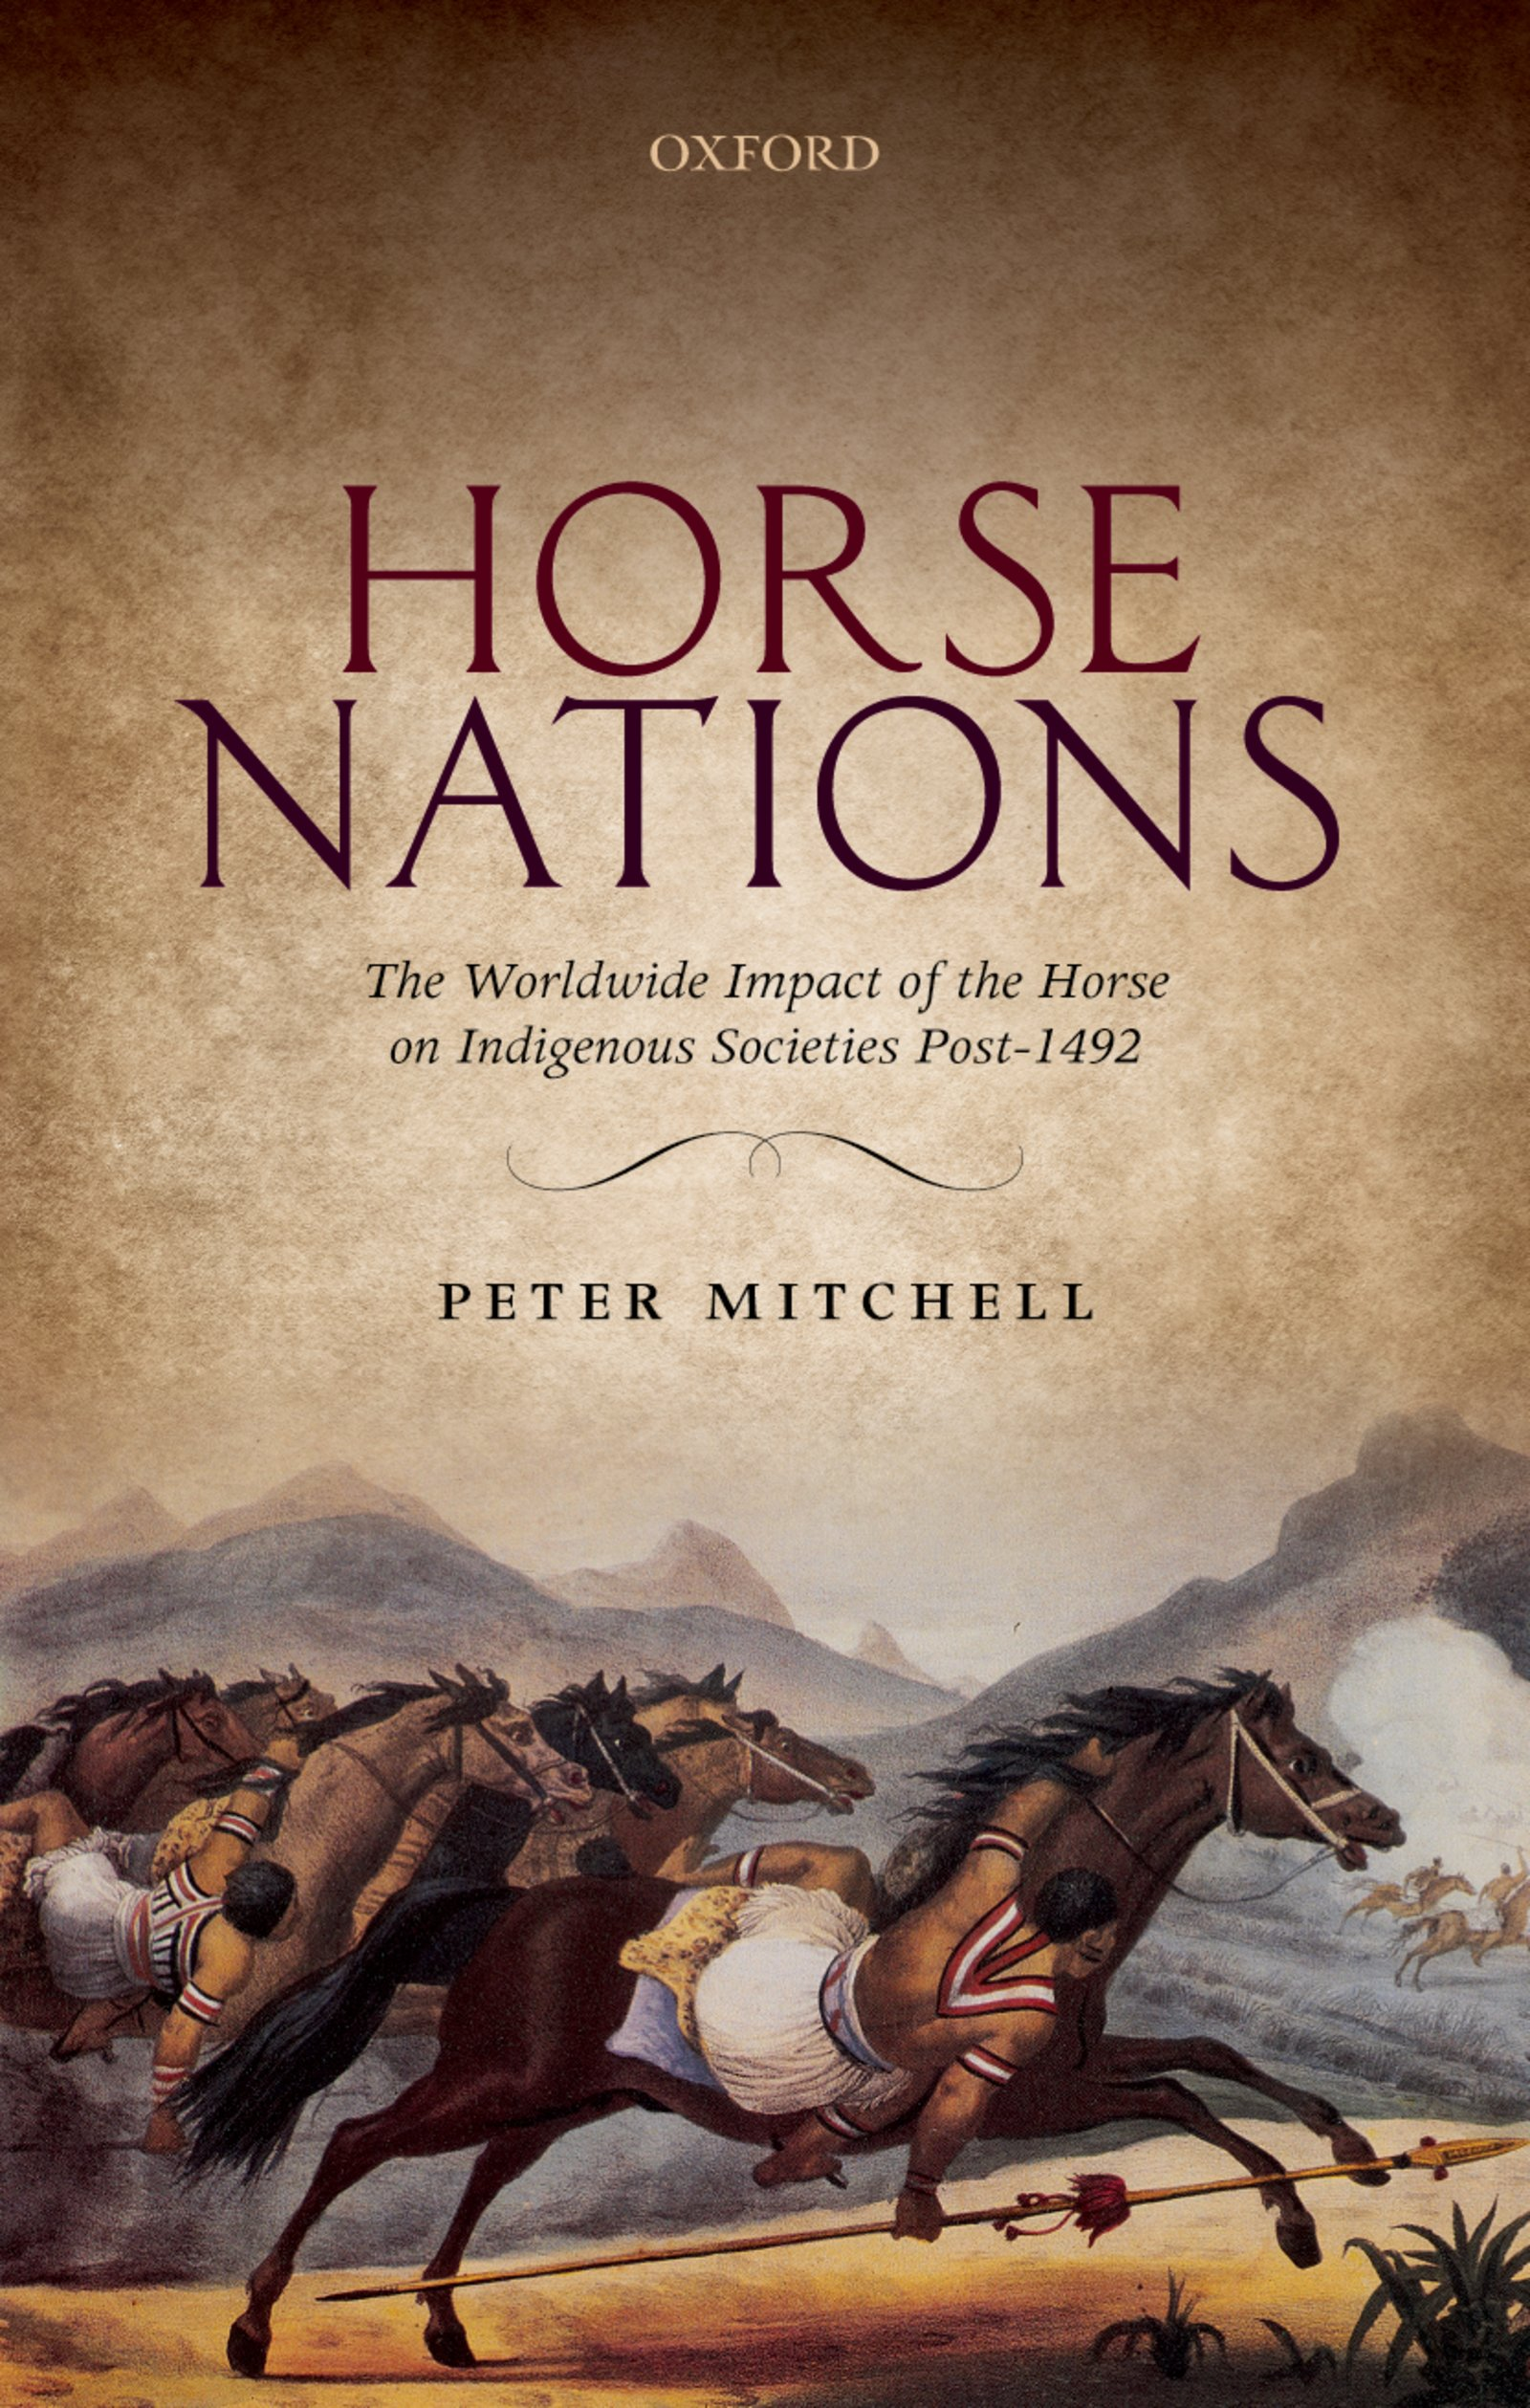 Horse NationsThe Worldwide Impact of the Horse on Indigenous Societies Post-1492